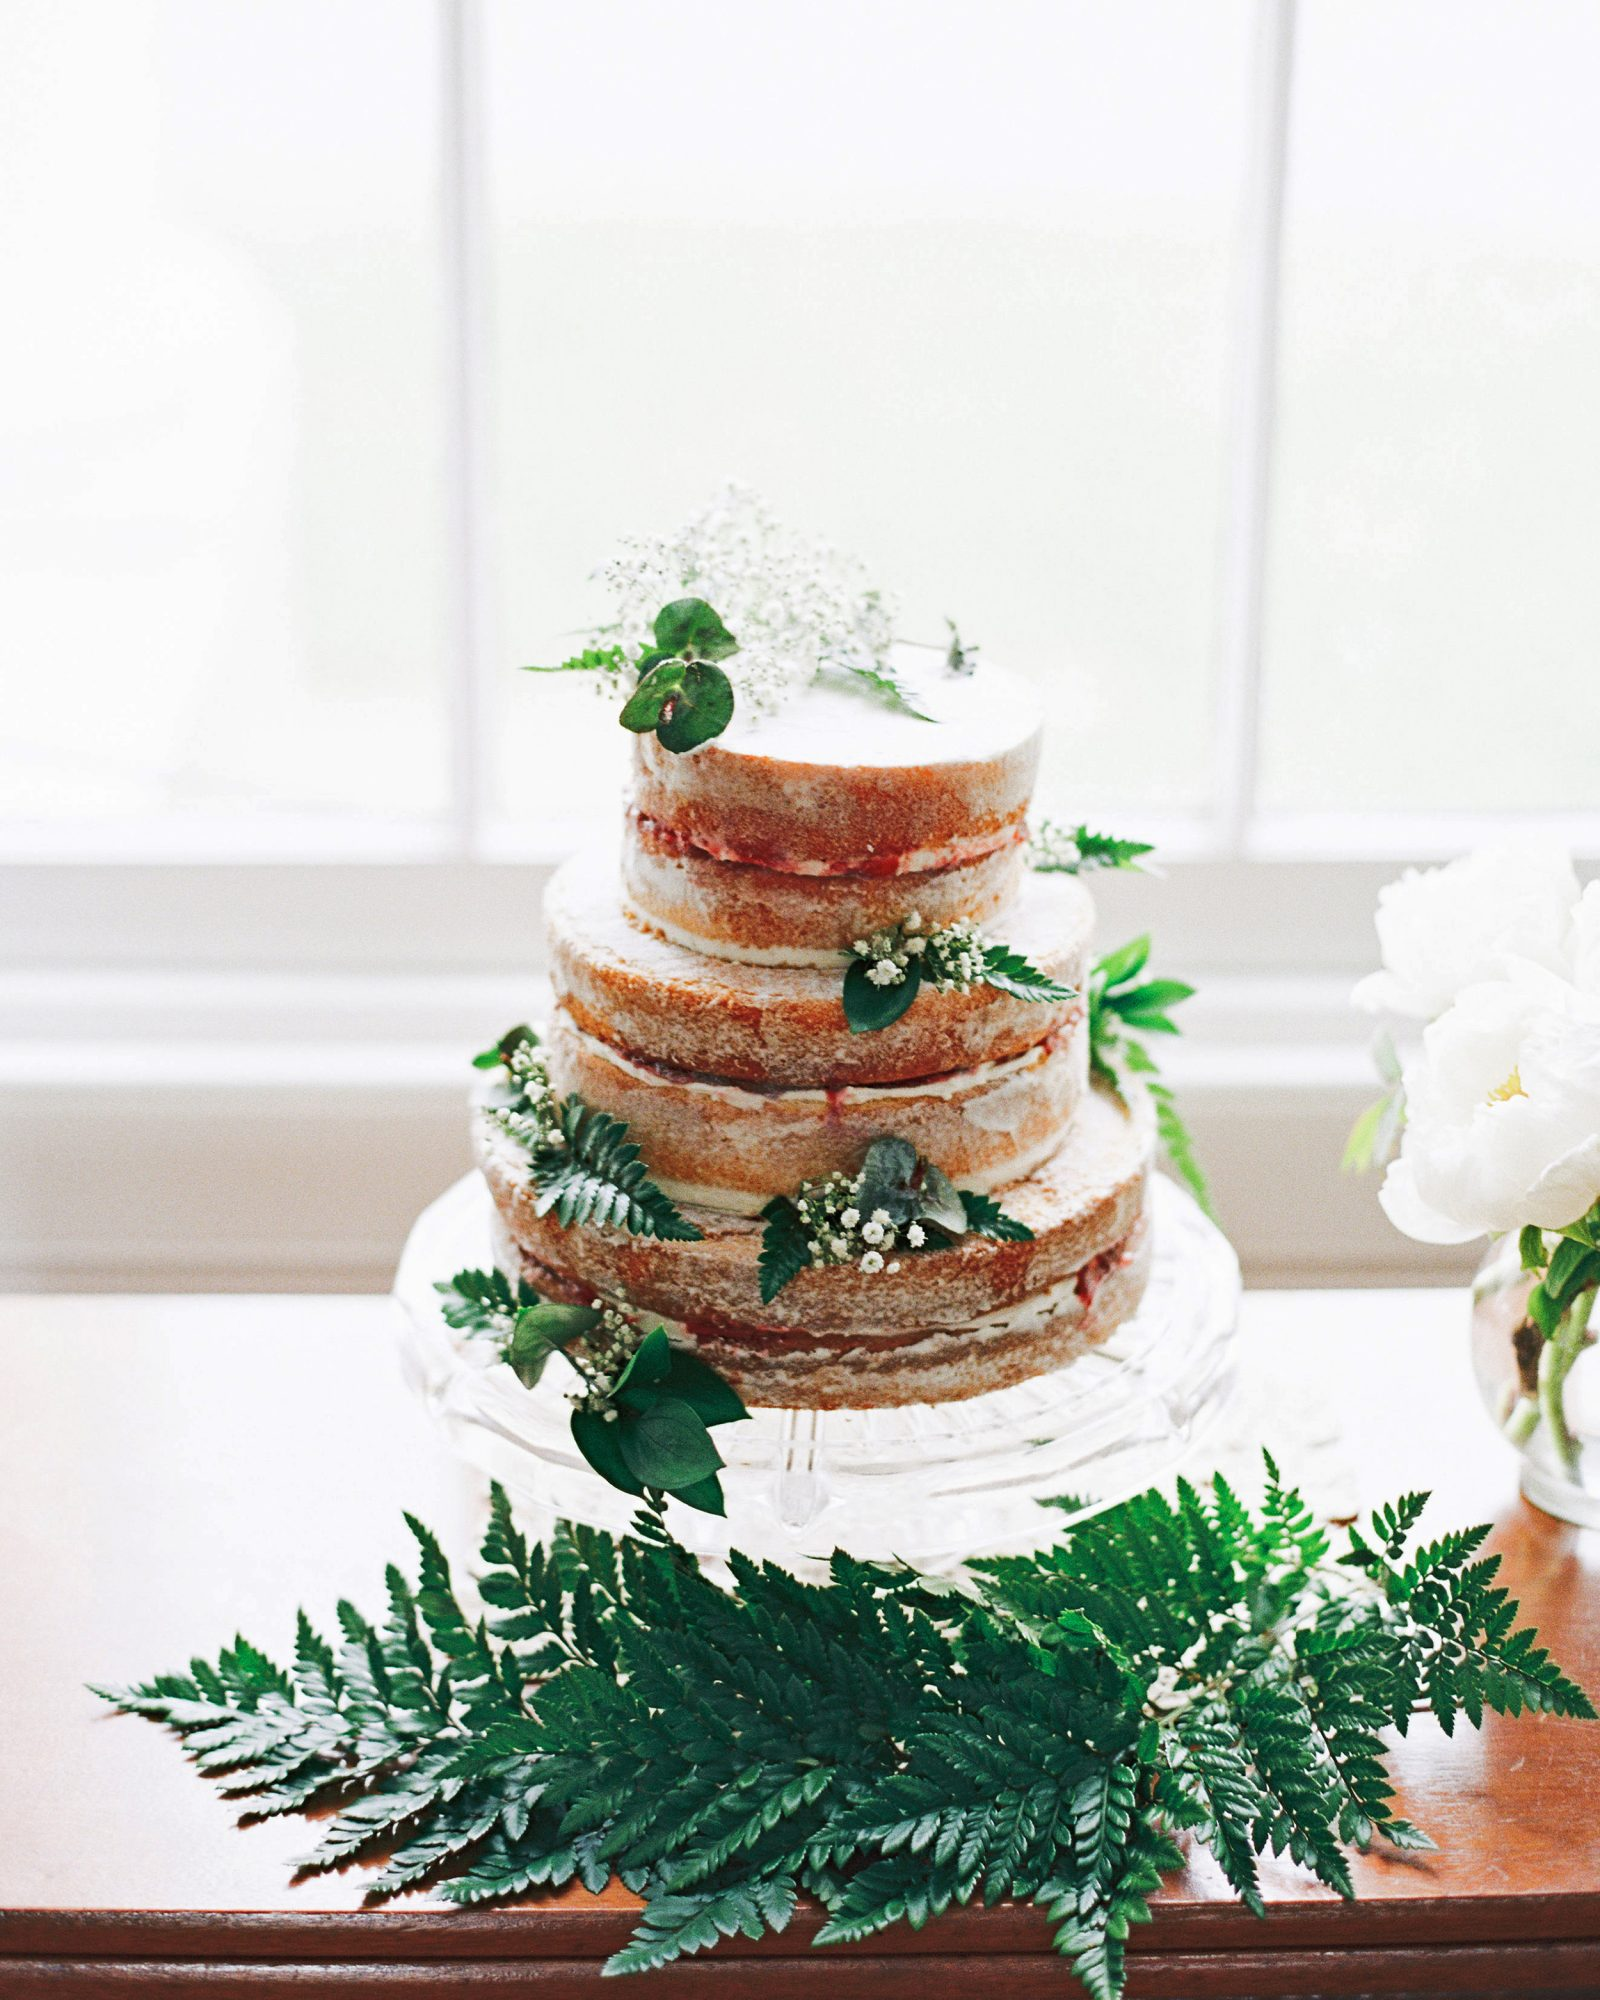 Our mouths are watering just looking as this decadent naked cake. Sticky Spatula baked the dessert, which was covered in foliage.